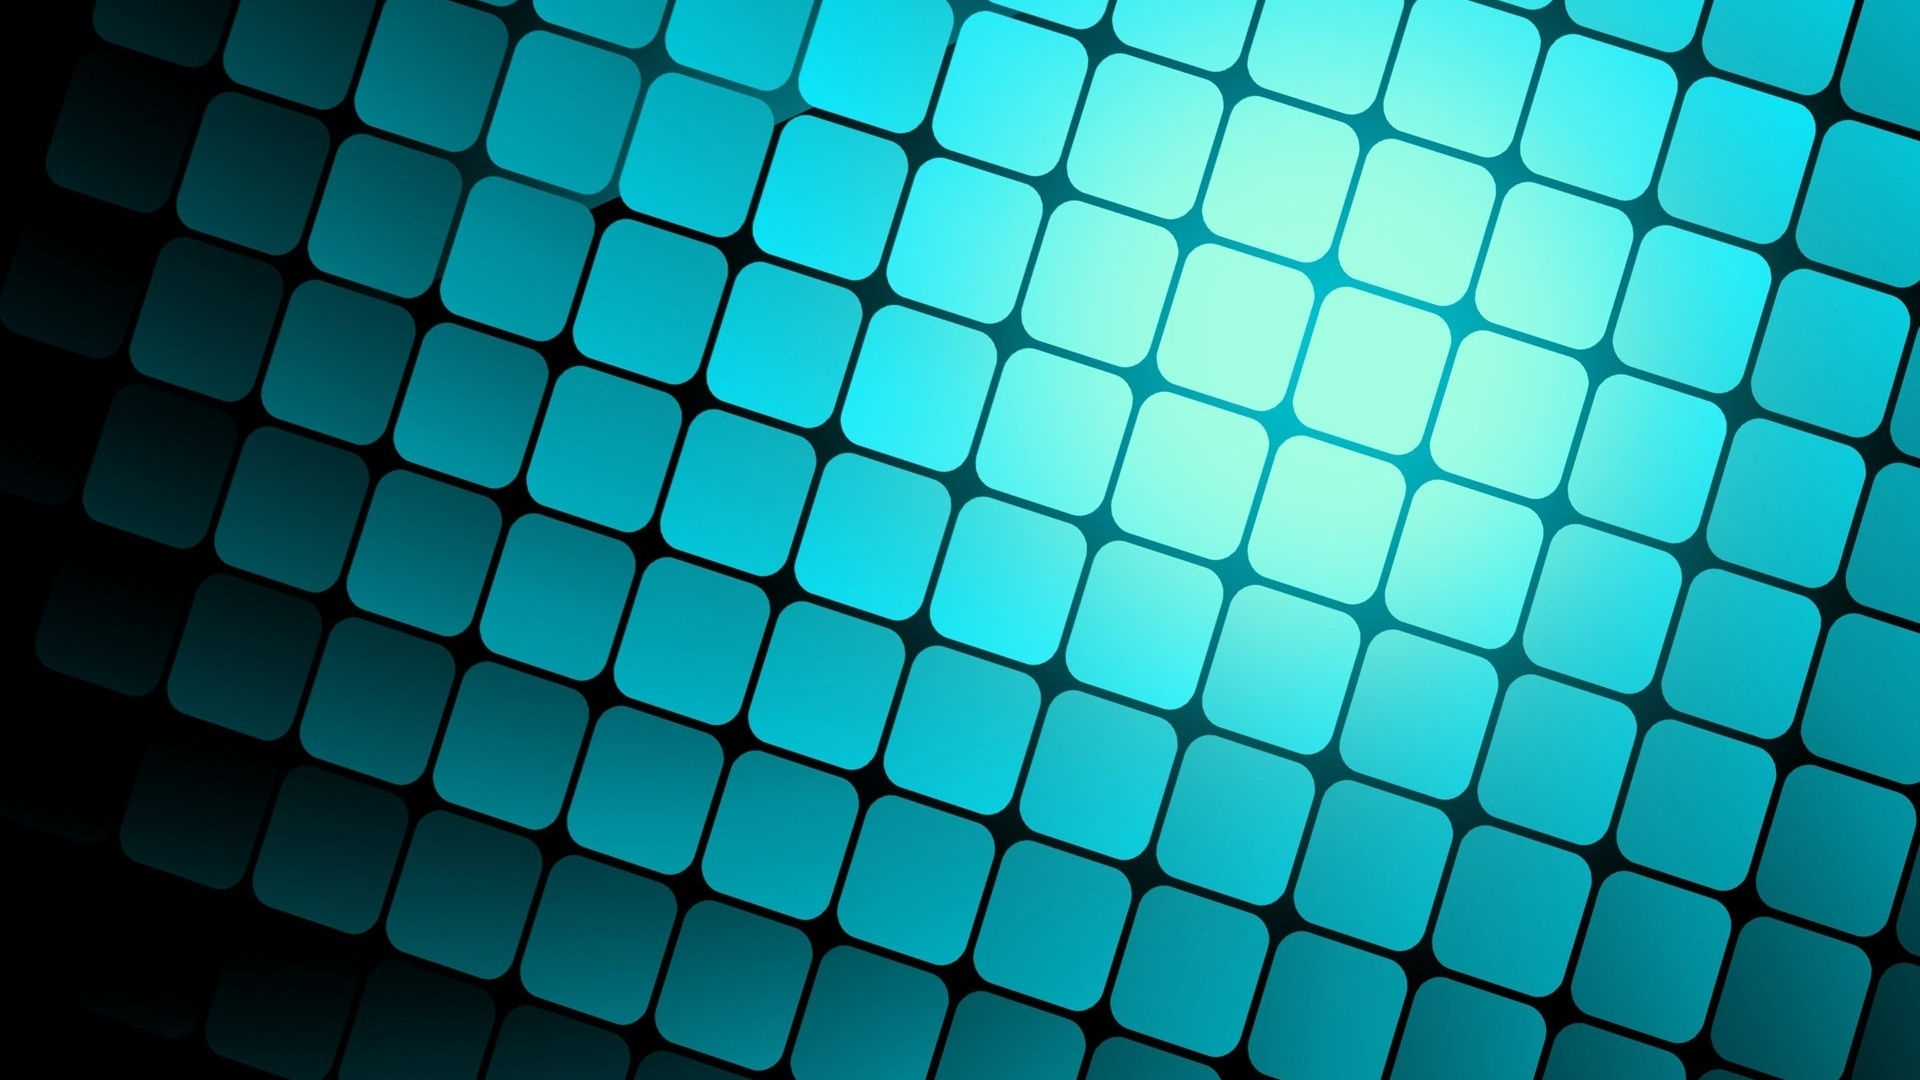 6814141-turquoise-wallpaper